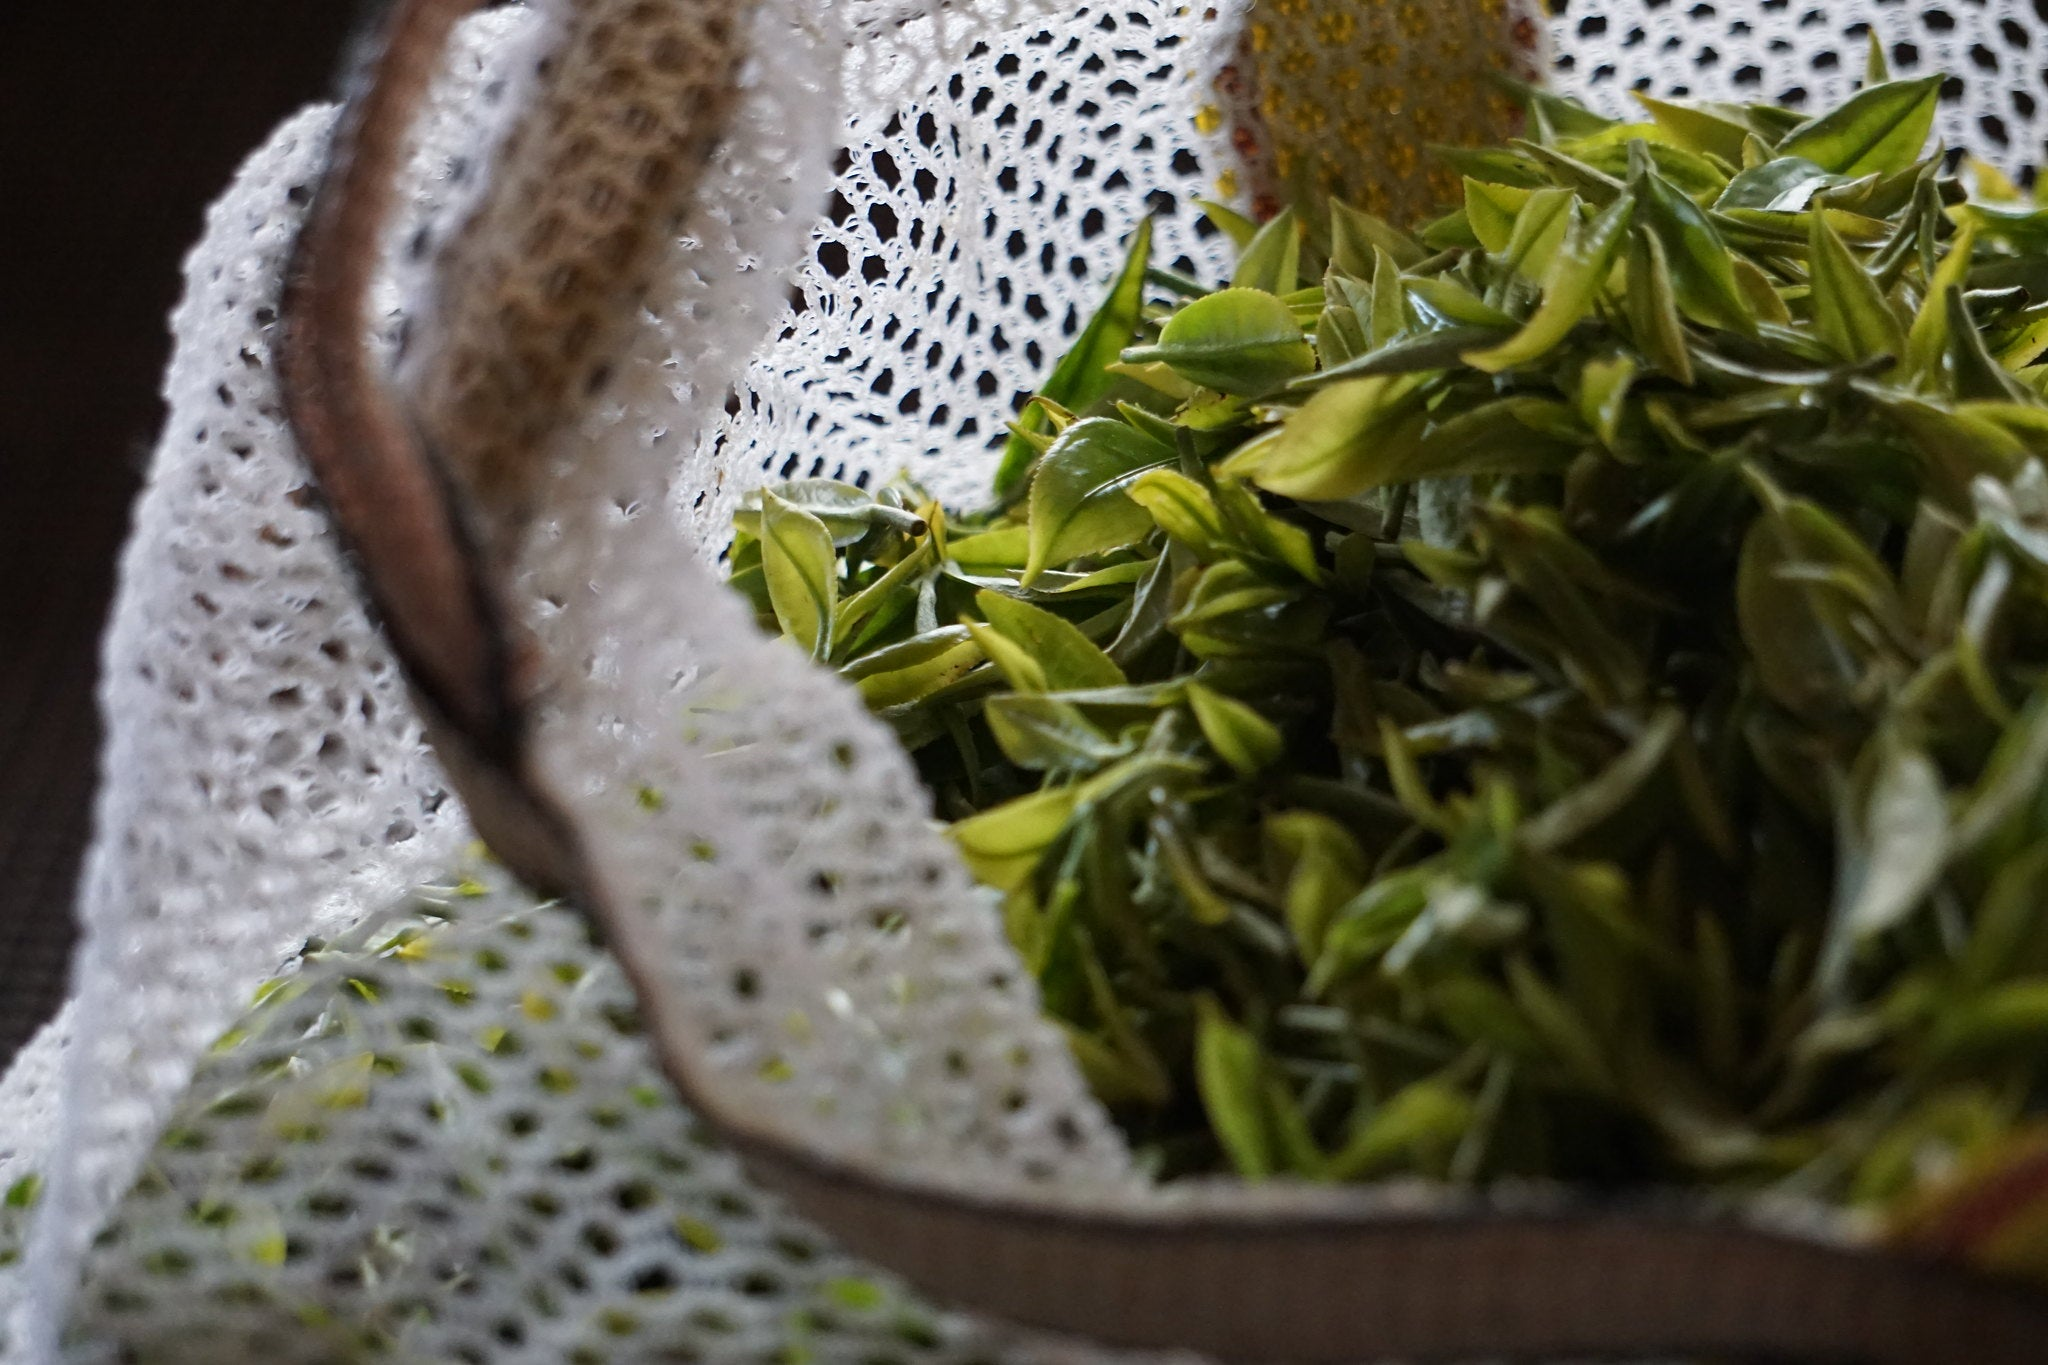 Hand picked Darjeeling tea leaves